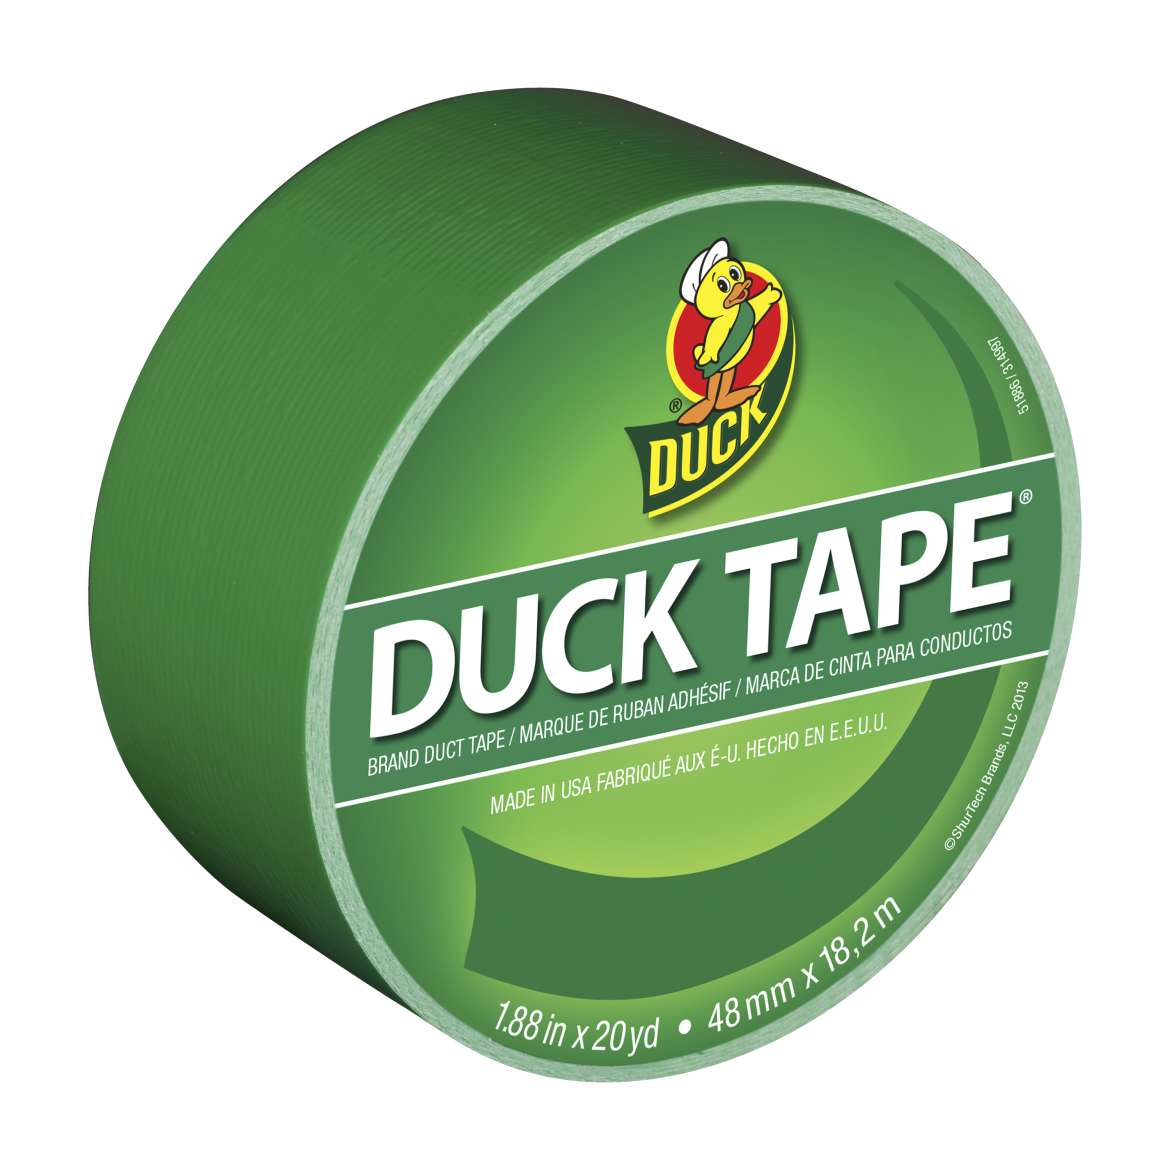 Color Duck Tape Brand Duct Tape - Green, 1.88 in. x 20 yd.